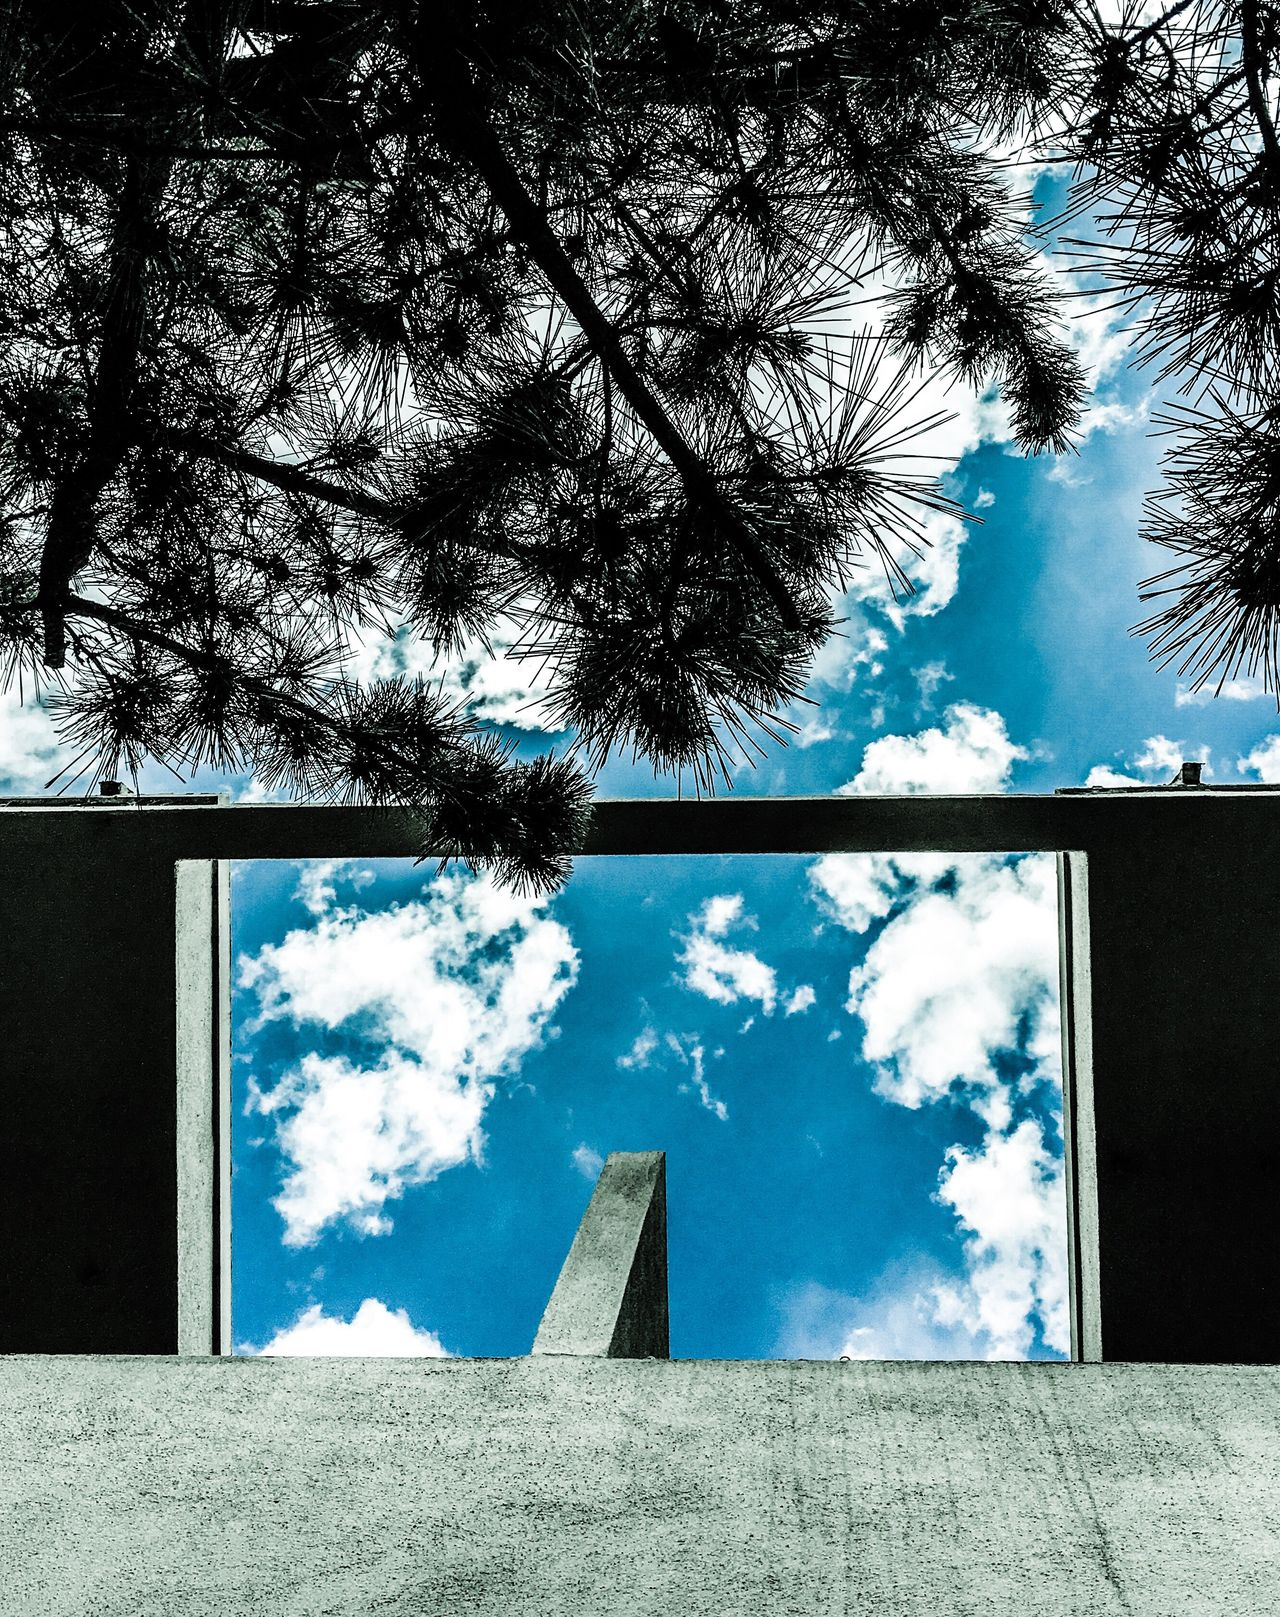 Shapes patterns windows portals architectural world Built Structure Day Architecture Window Sky Tree Building Exterior Cloud - Sky Low Angle View No People Growth Outdoors Nature Windows Sky And Clouds Minimalist Architecture Tranquility Nature Portal To Another World. Illusion Fantasy EyeEmNewHere The Architect - 2016 EyeEm Awards